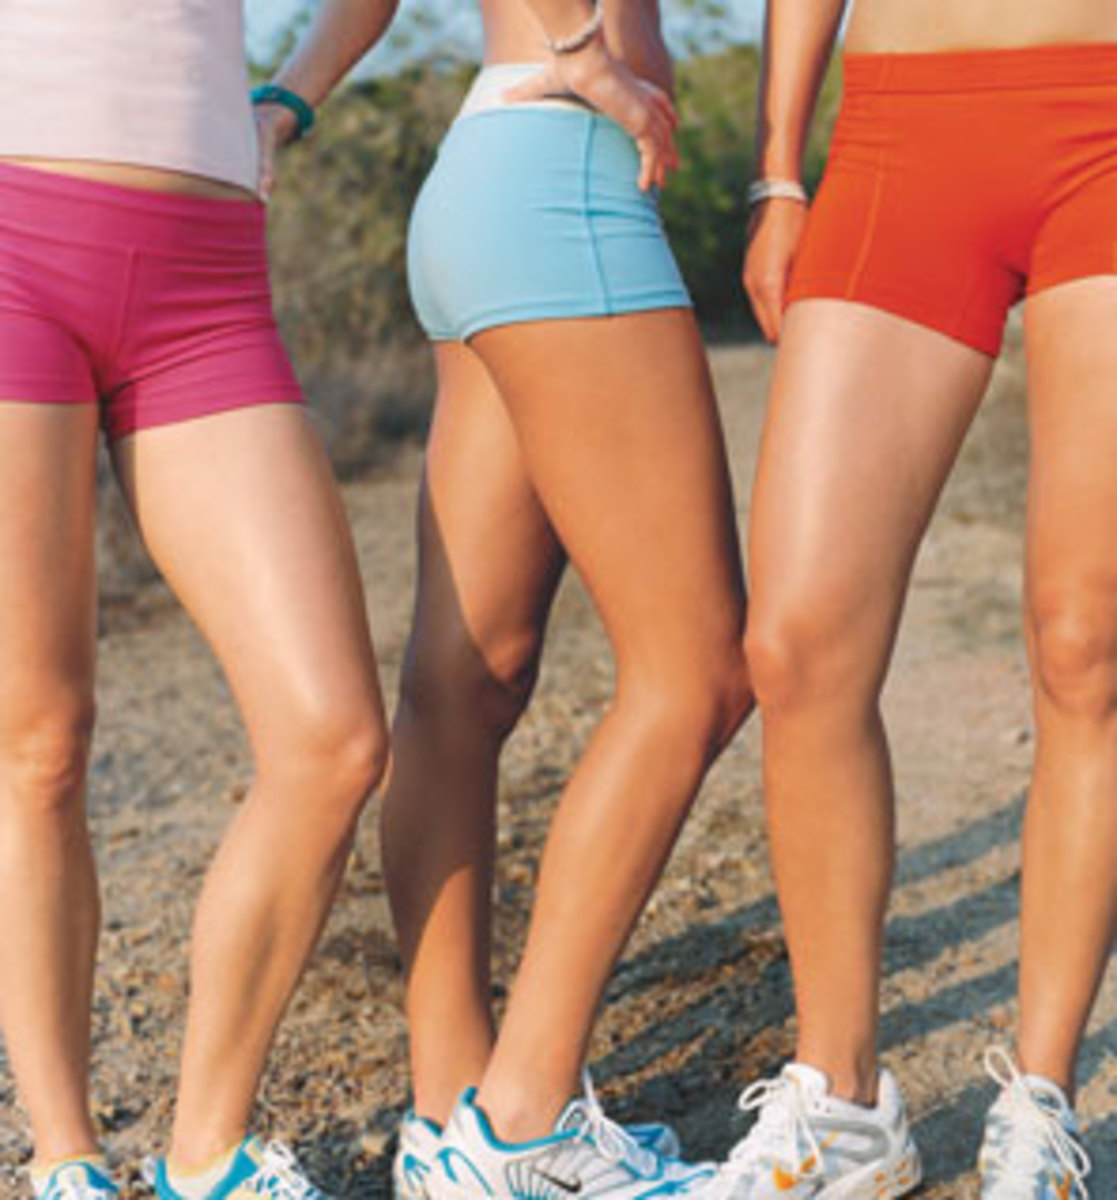 How to Get Rid of Your Cellulite